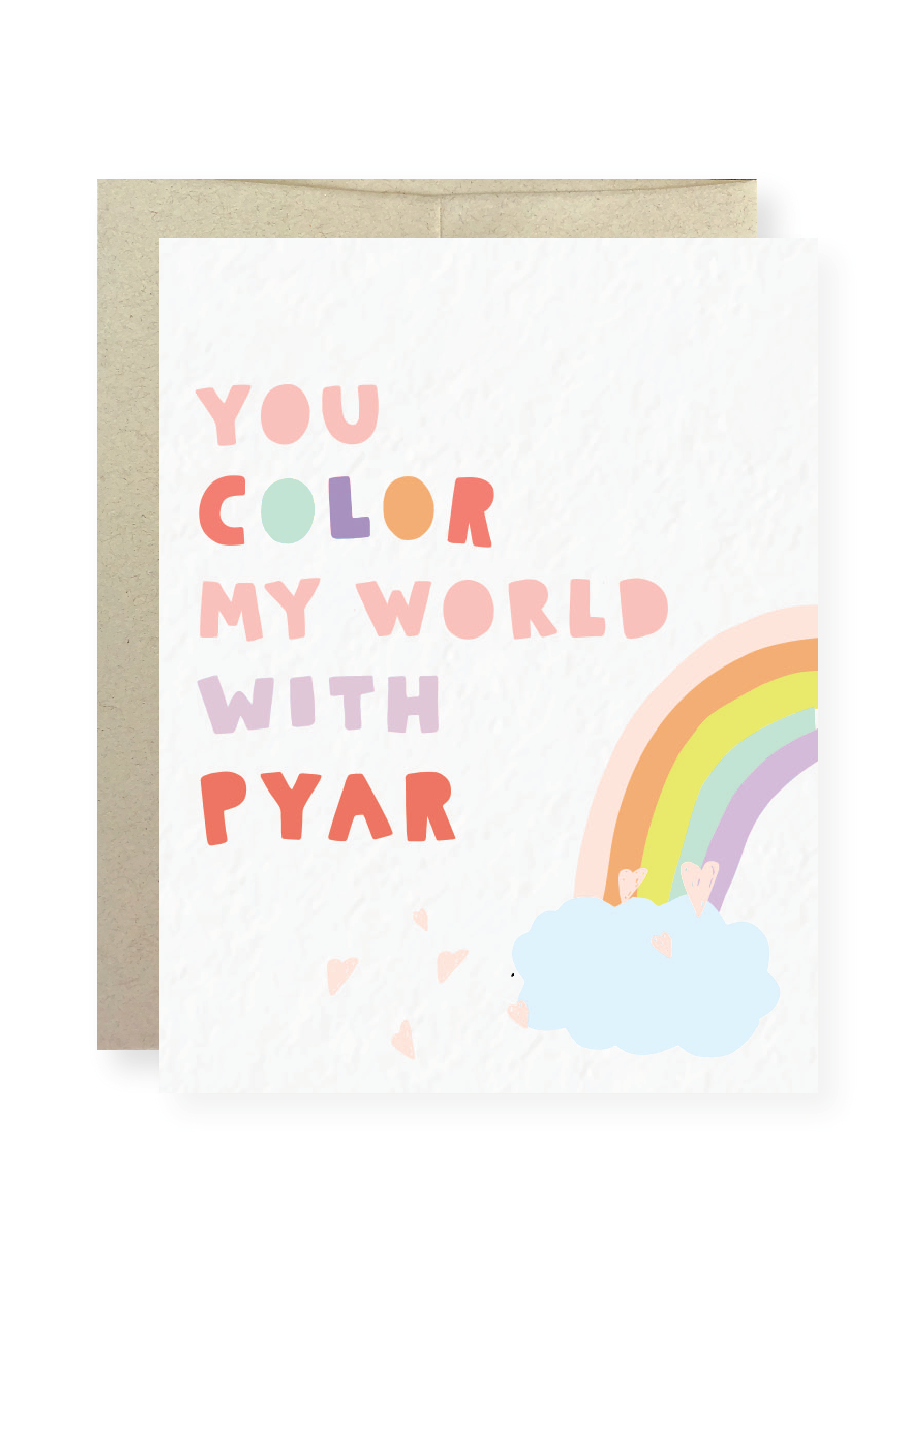 You color my world with Pyar